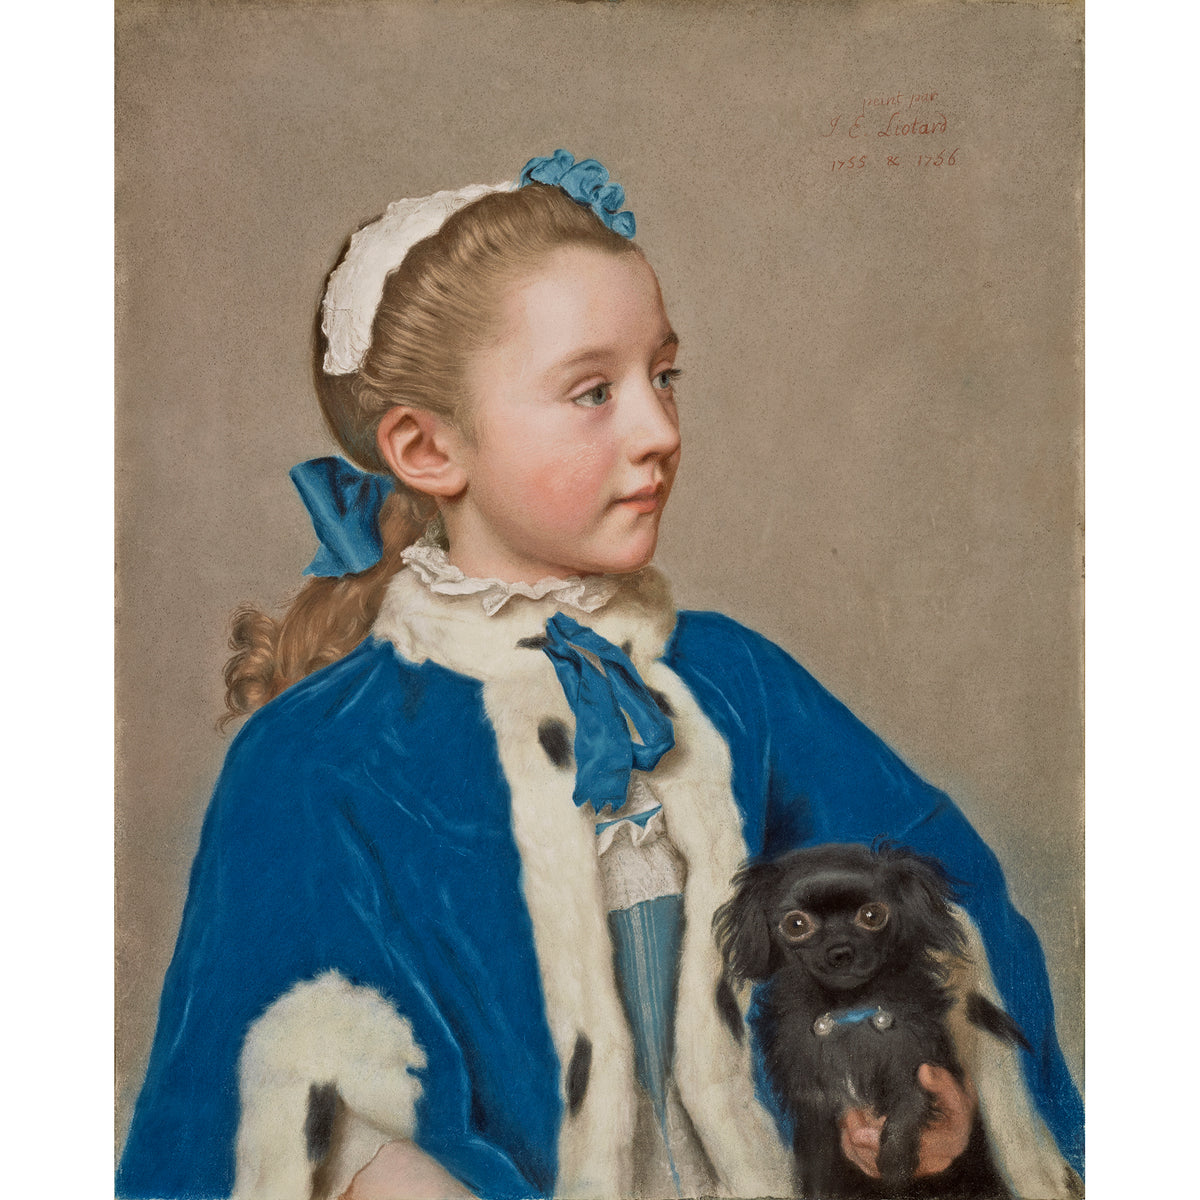 Plush Puppy from Portrait of Maria Frederike by Jean-Etienne Liotard-Painting used as inspiration for plush puppy  | Getty Store